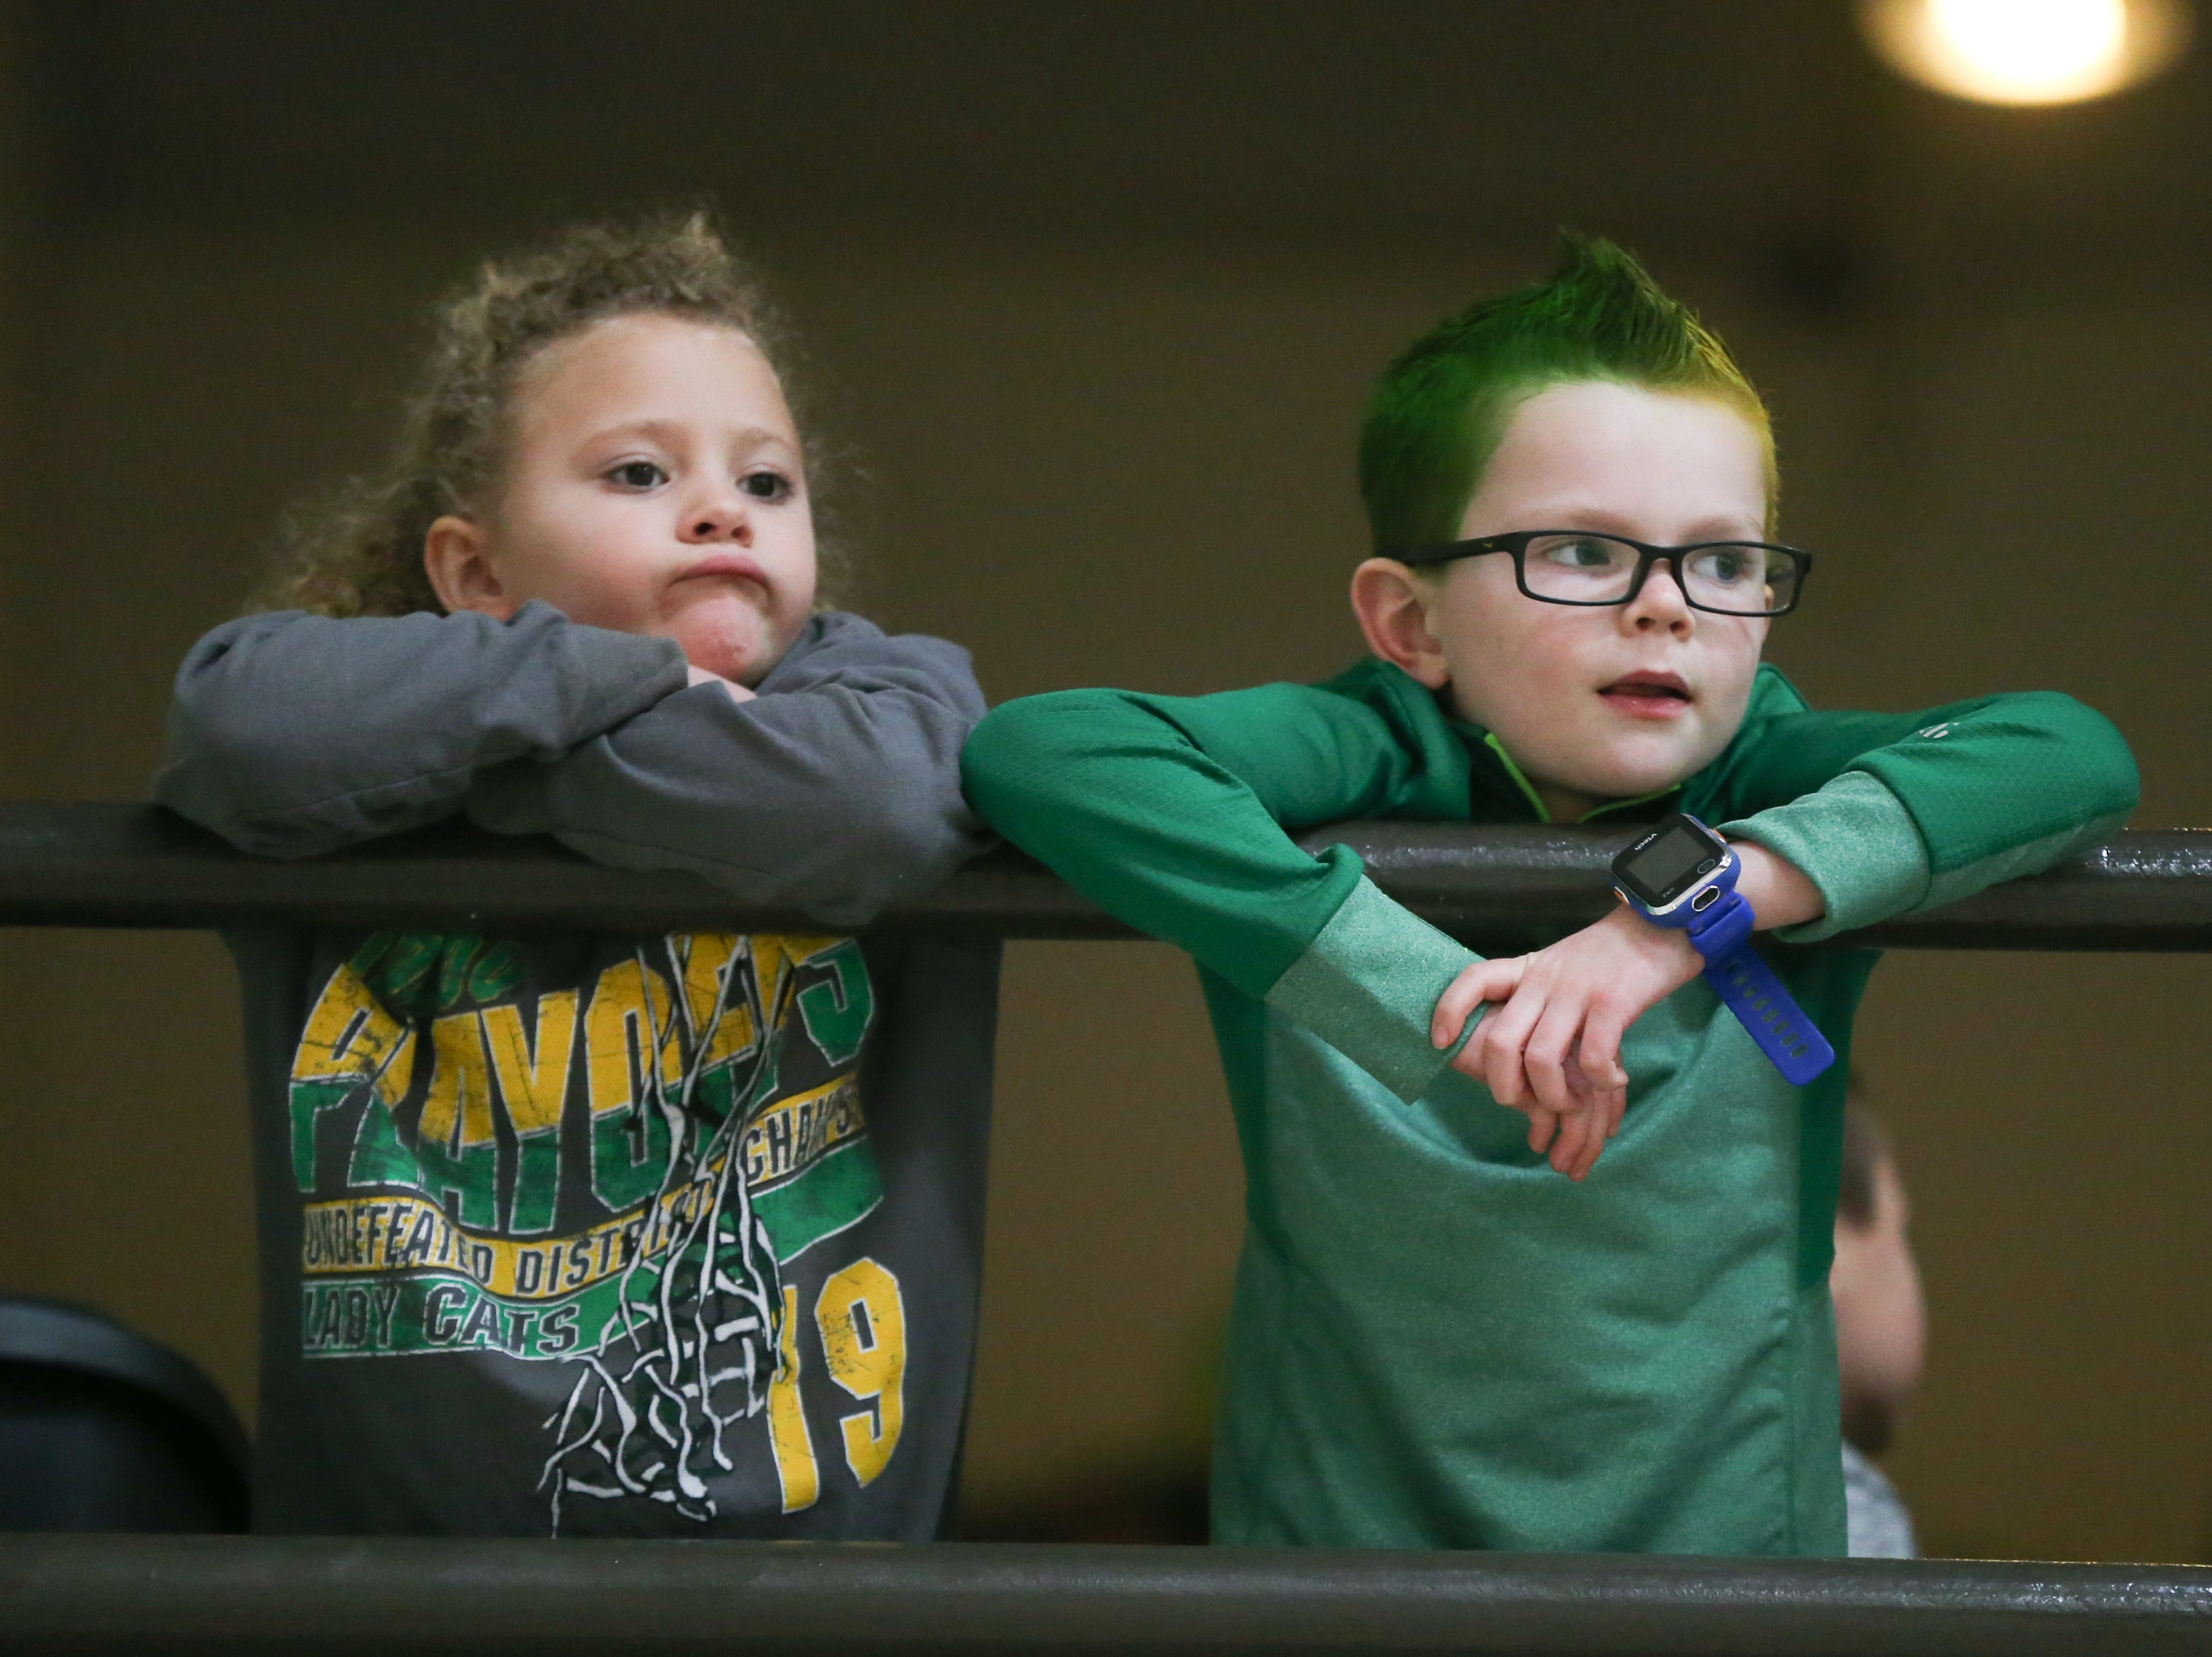 Wall fans watch the 1-3A regional tournament against Brock Friday, Feb. 22, 2019, at Wayland Baptist University in Plainview.